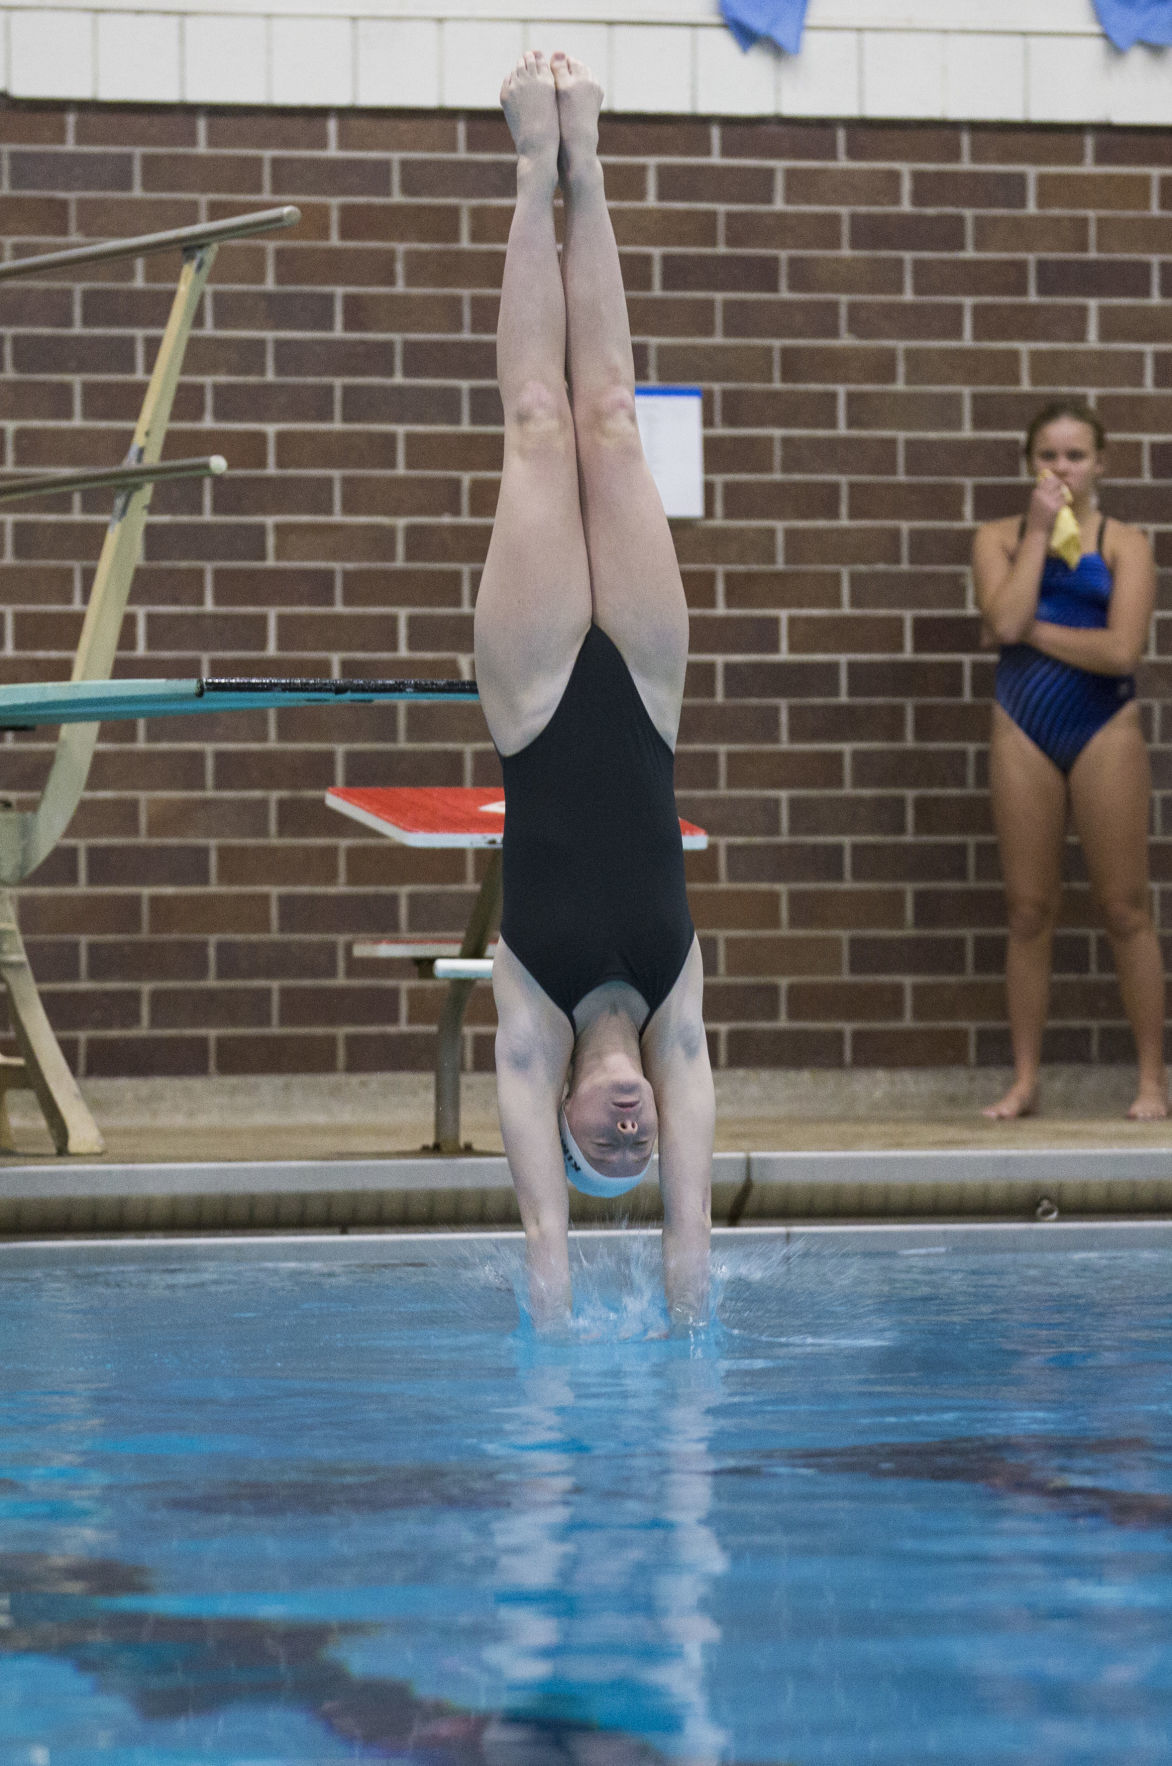 101719kw-diving-02